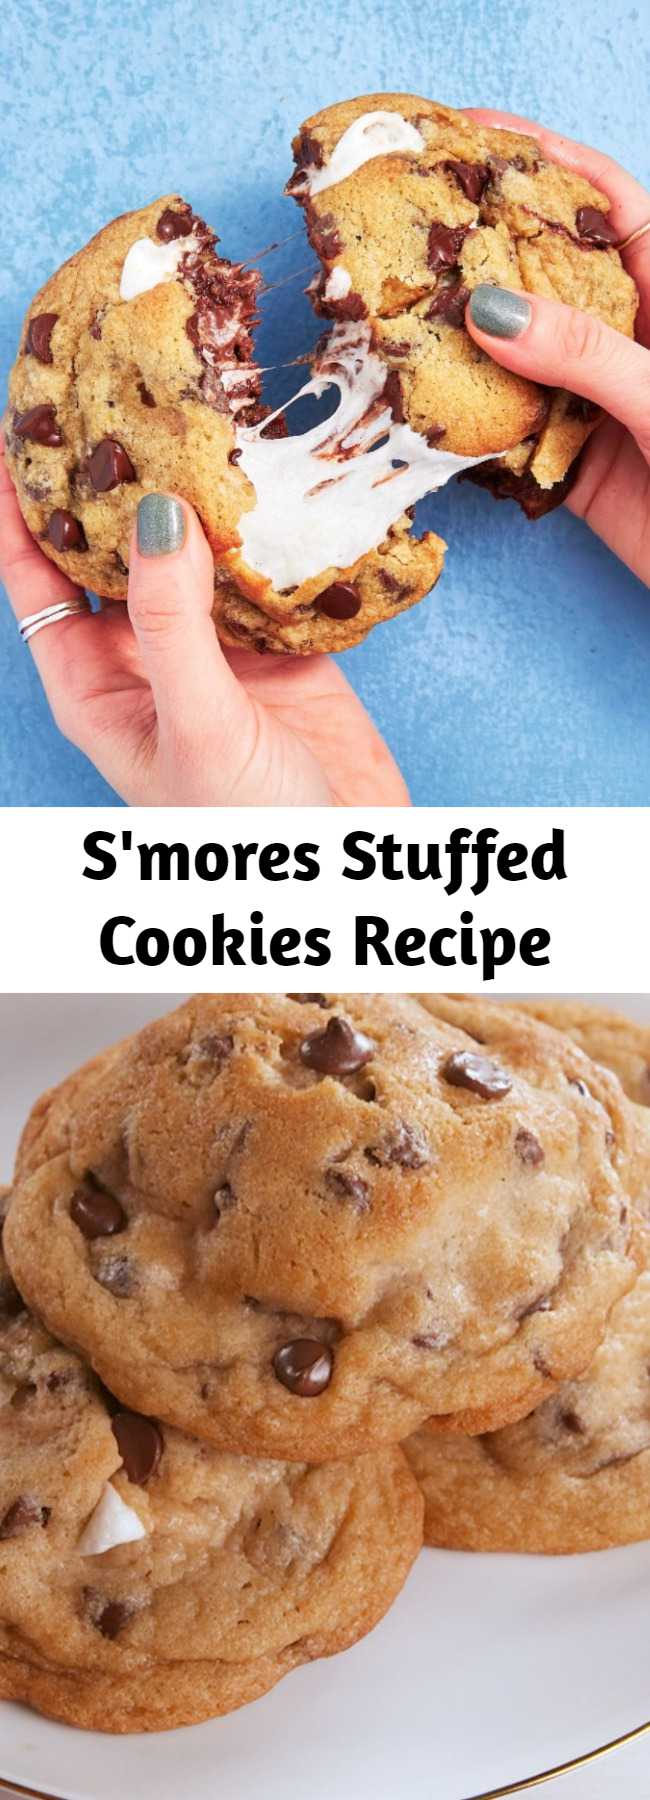 S'mores Stuffed Cookies Recipe - To insure your cookie doesn't turn into a big puddle with graham cracker poking out, refrigerate your cookies before you bake them. 10 to 15 minutes should do the trick — no longer than an hour though, or your marshmallows won't melt while baking! #easyrecipe #baking #smores #cookie #dessert